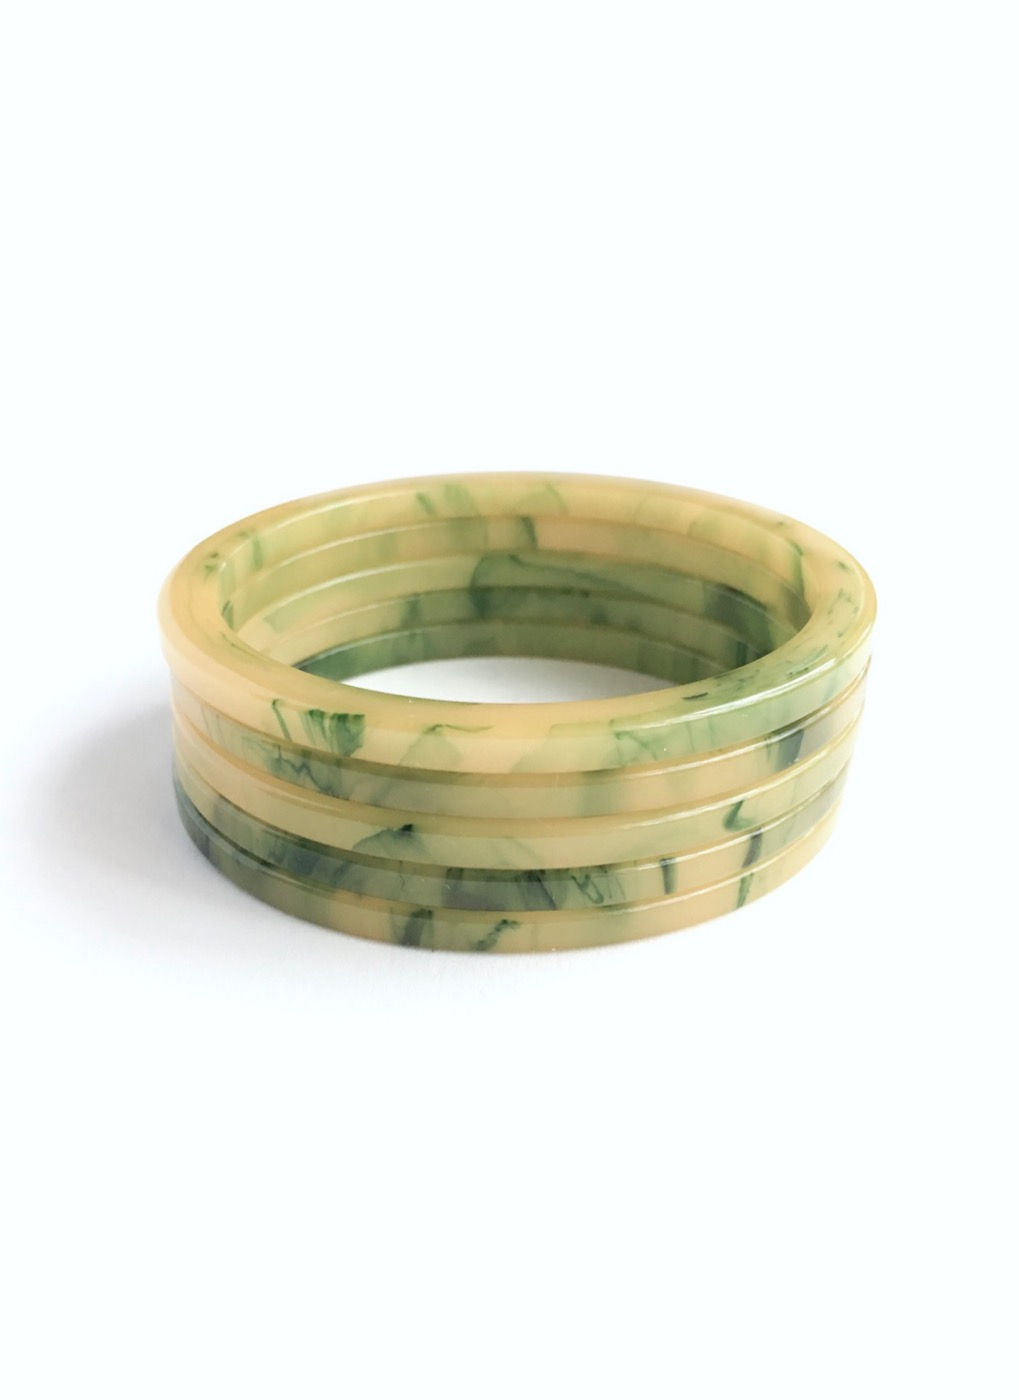 COMING SOON! 1930s yellow green marbled Bakelite bangles